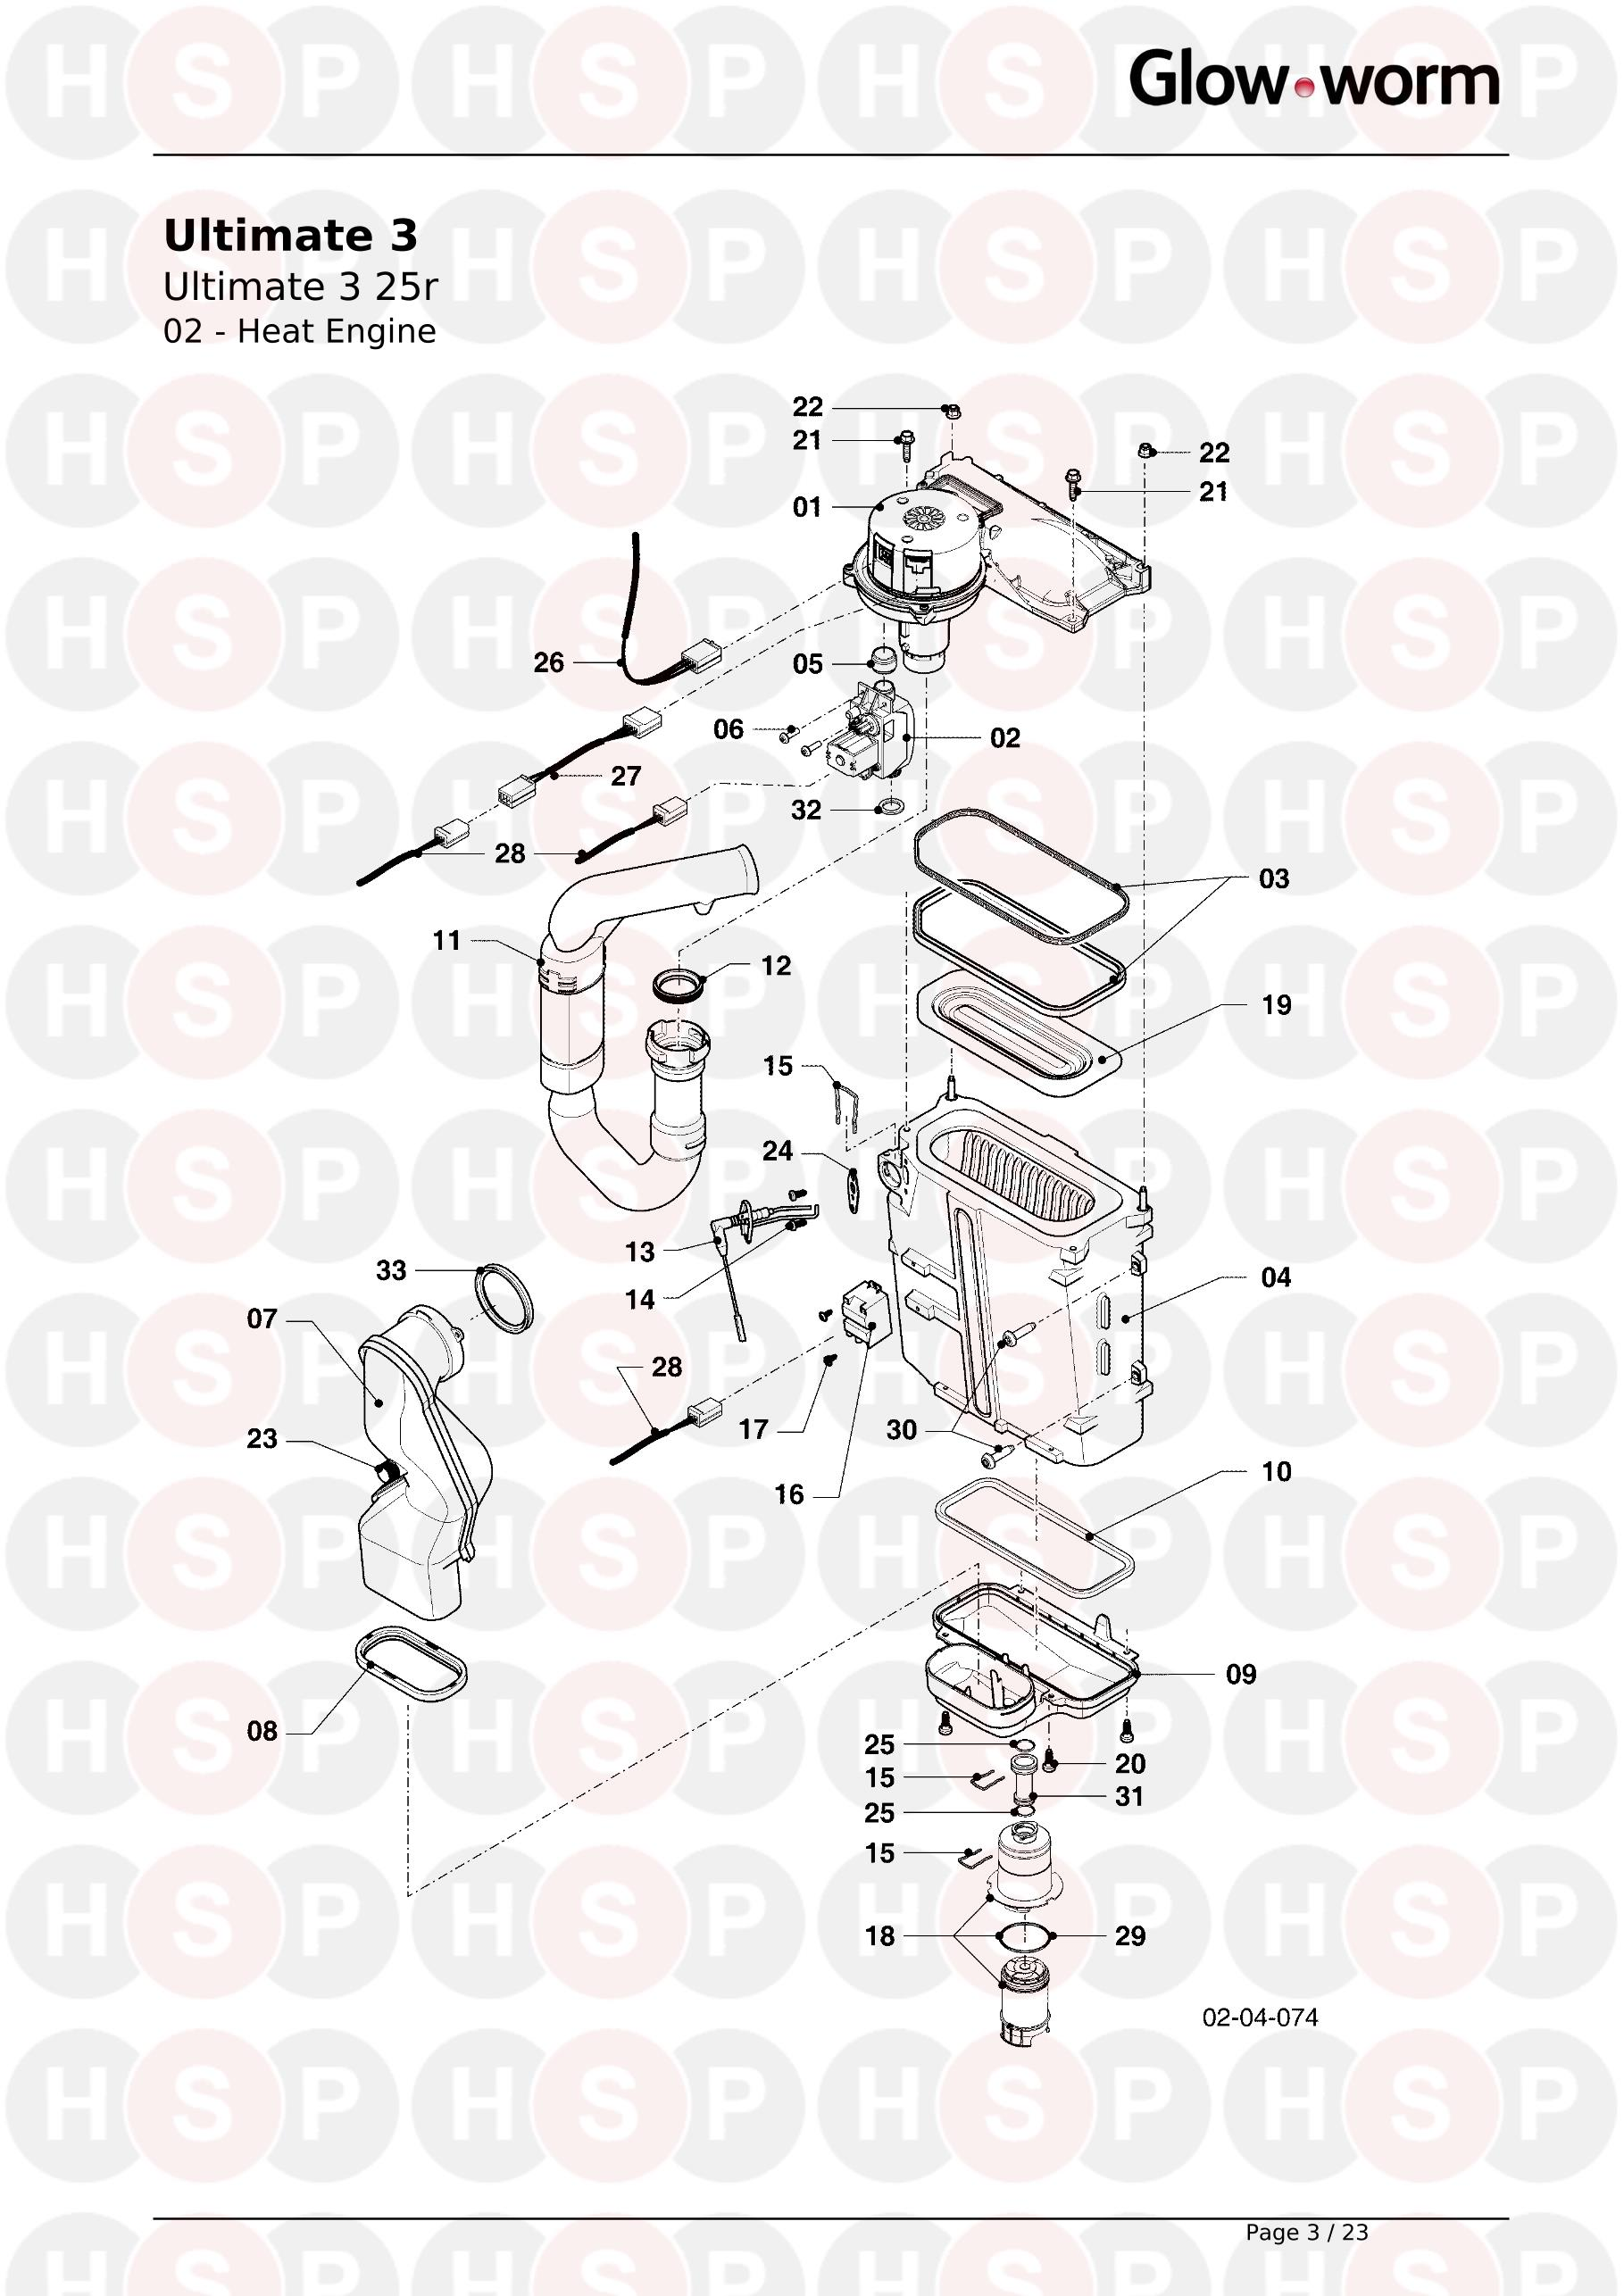 02 HEAT ENGINE diagram for Glowworm ULTIMATE 3 25r